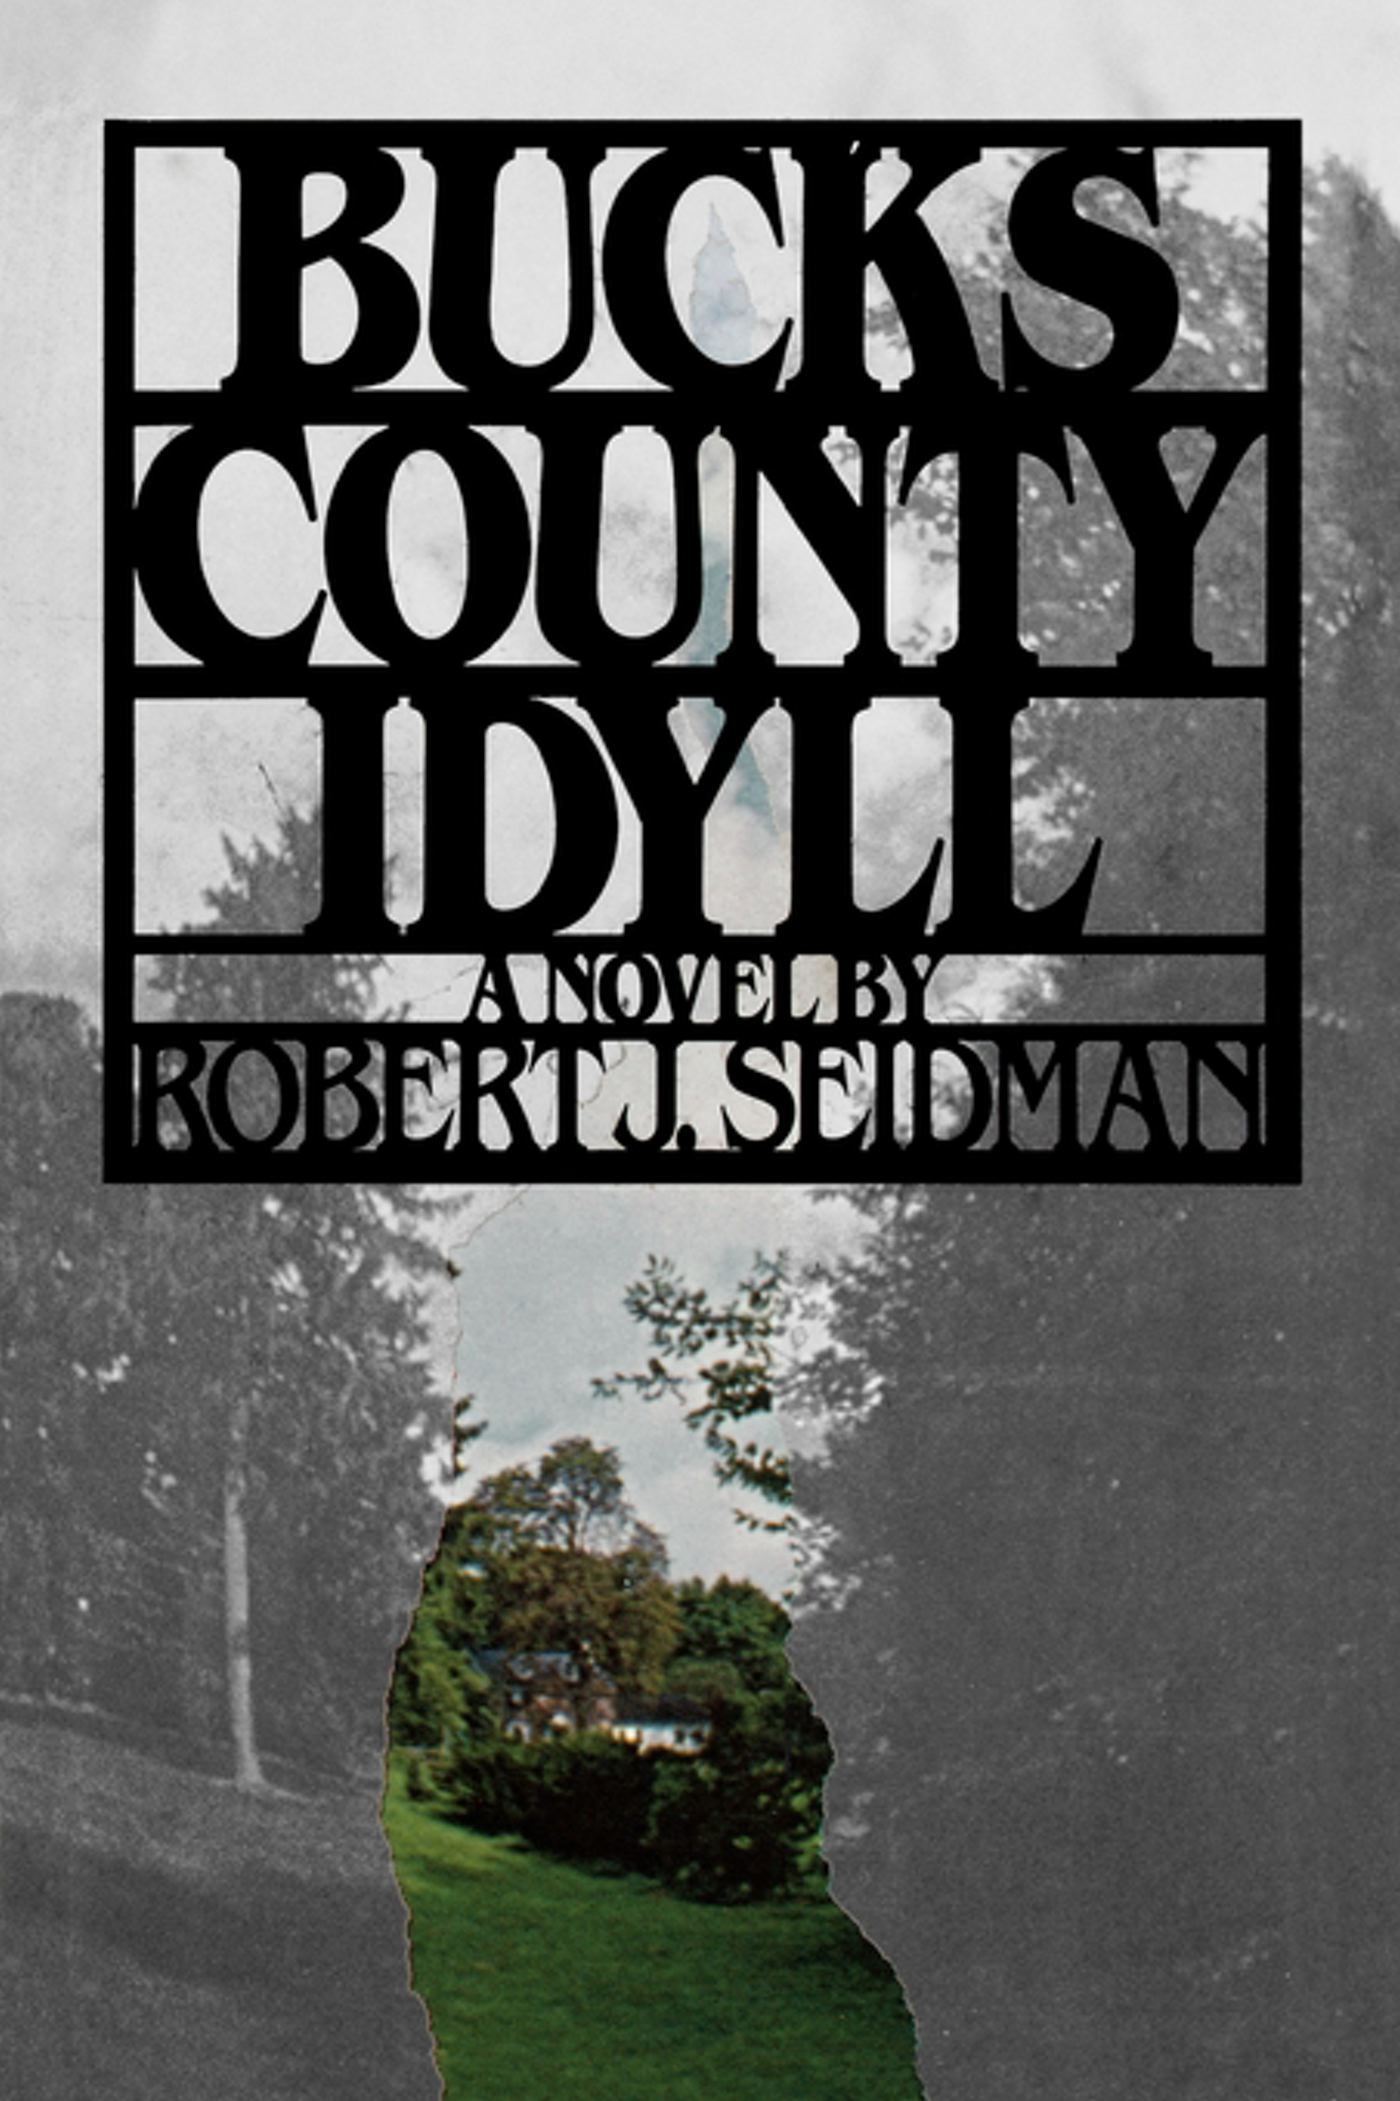 Bucks-county-idyll-9781439183250_hr